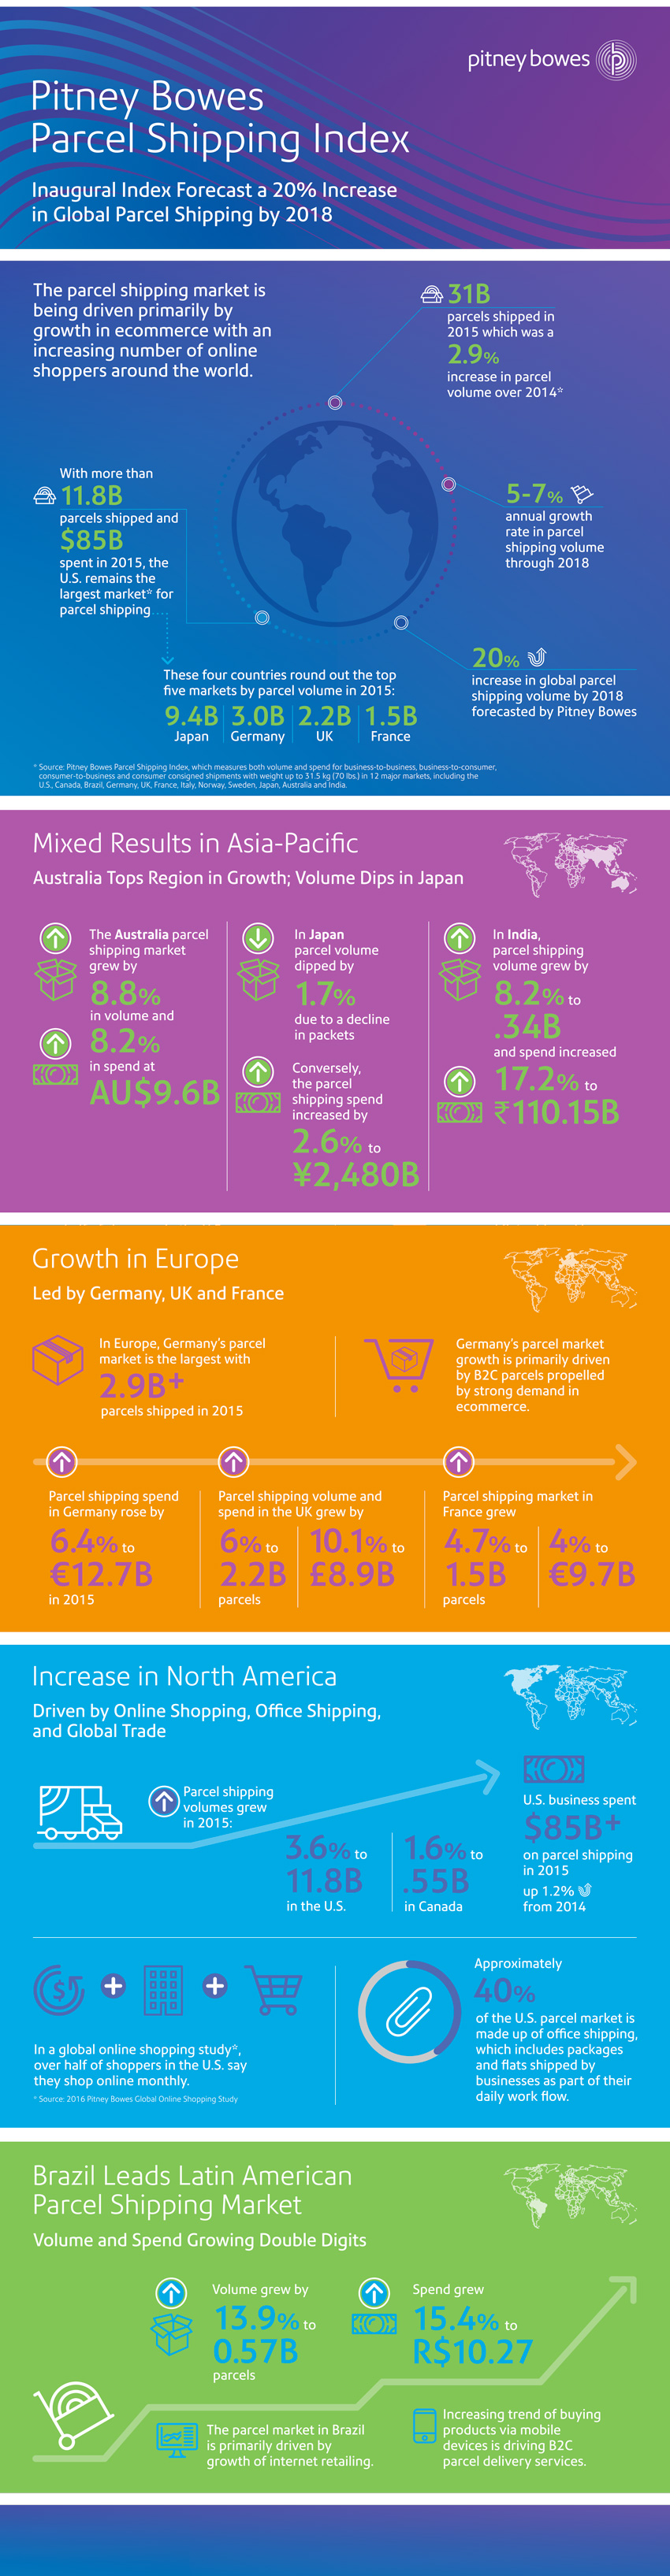 Pitney Bowes Parcel Shipping Index infographic